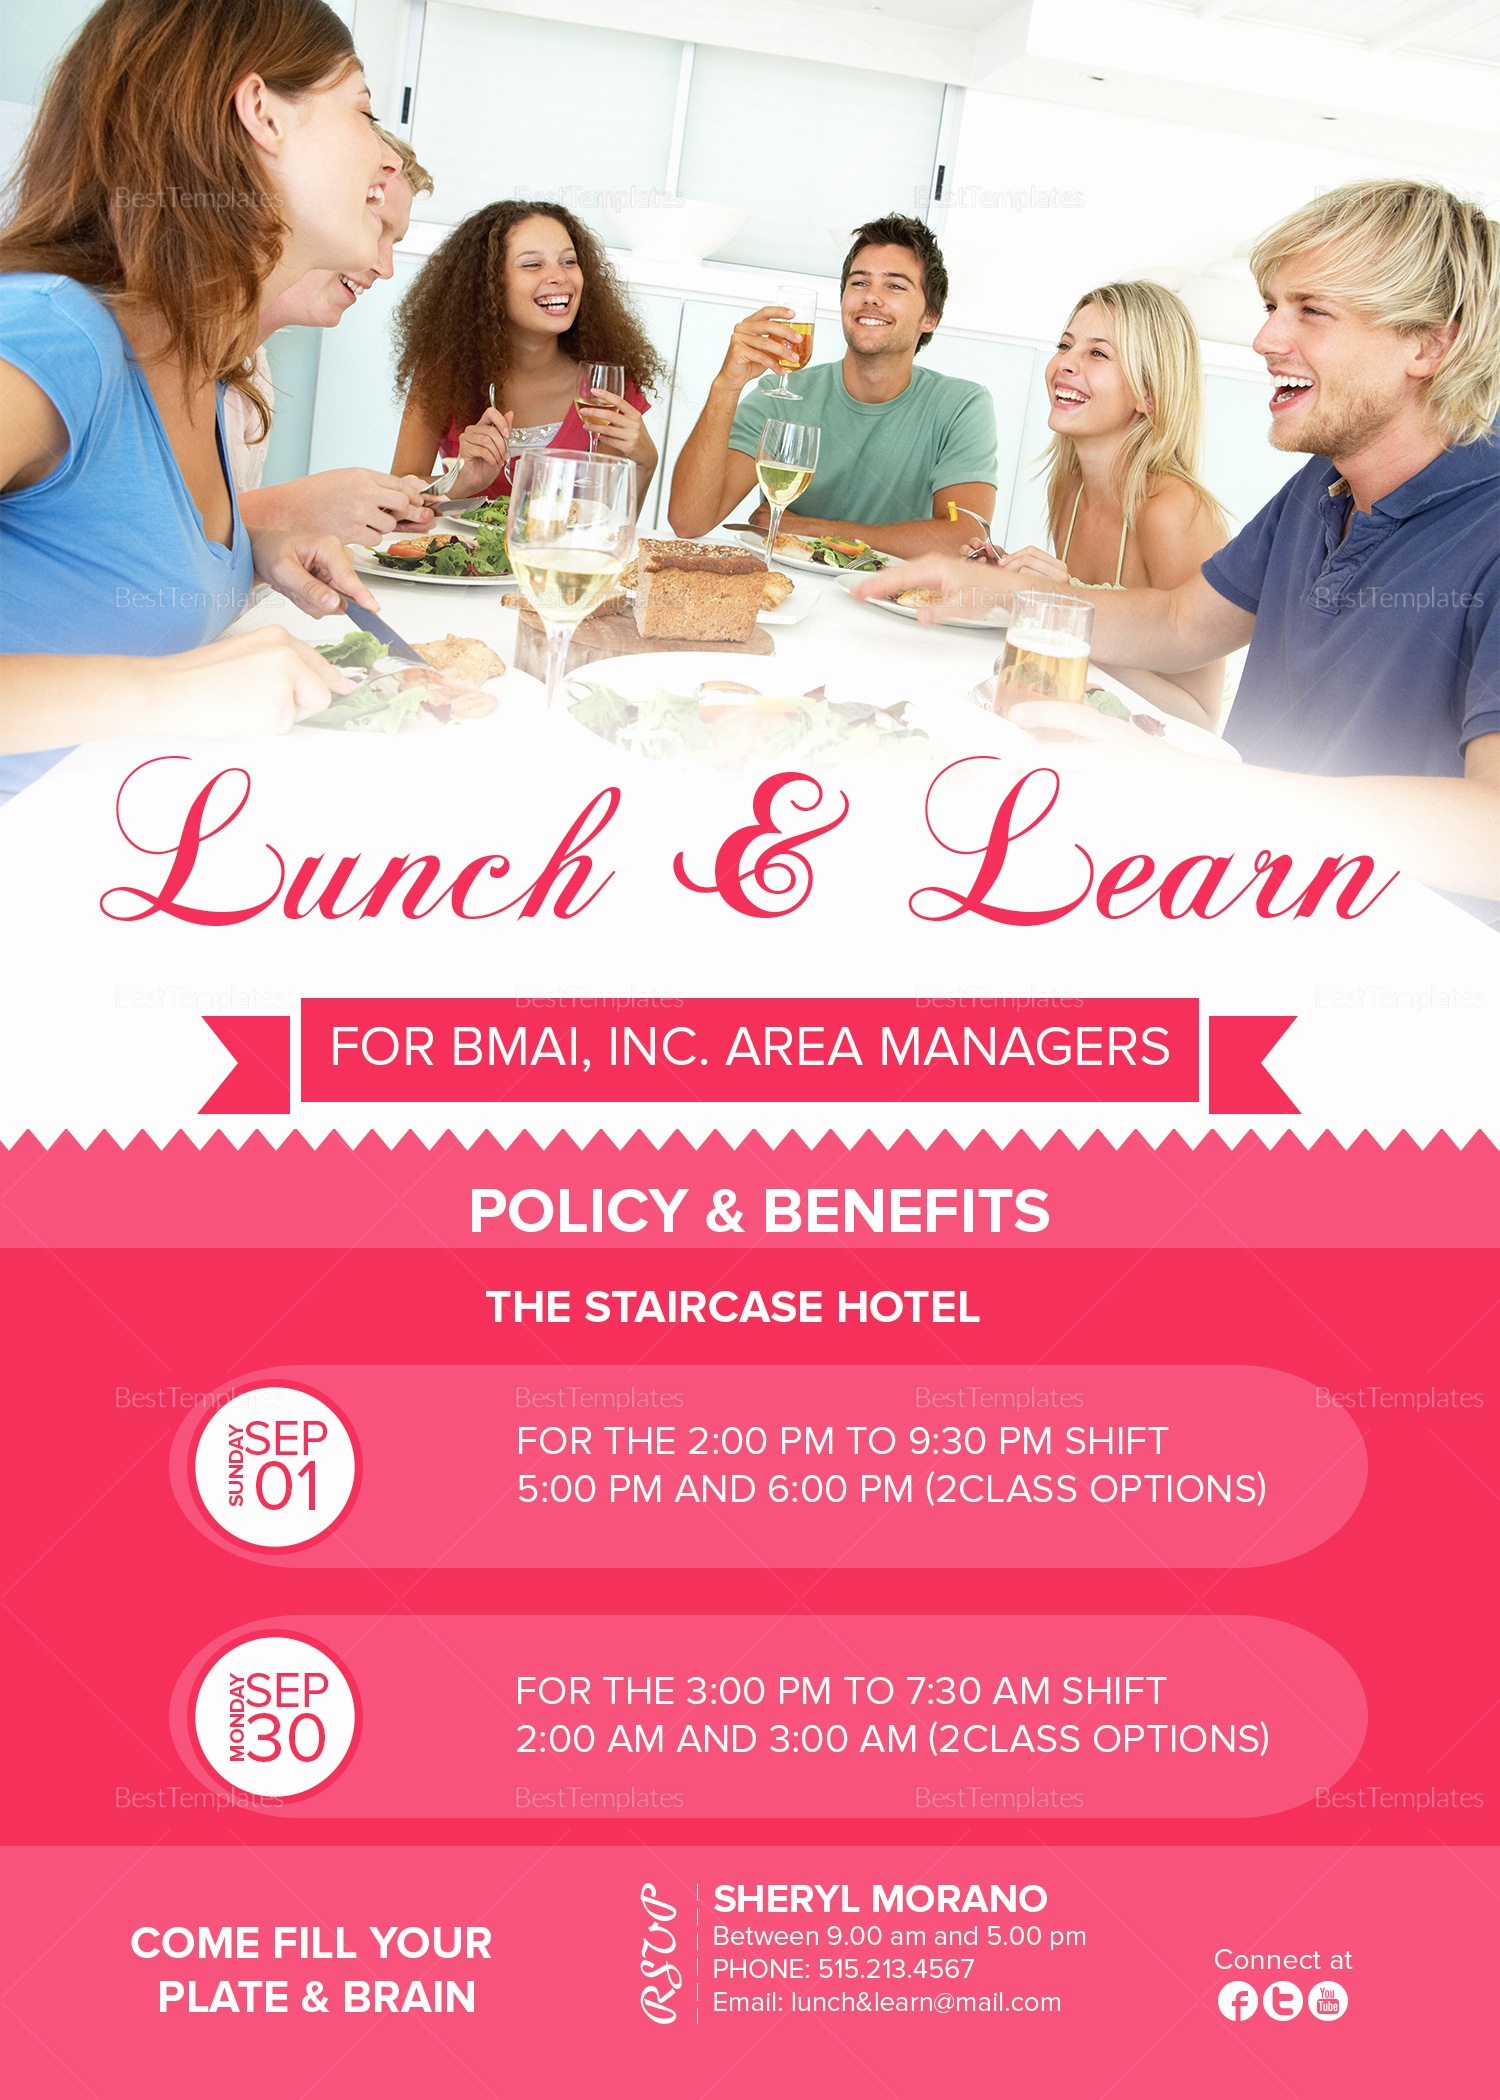 Lunch and Learn Invitation Awesome Lunch and Learn Invitation Design Template In Psd Word